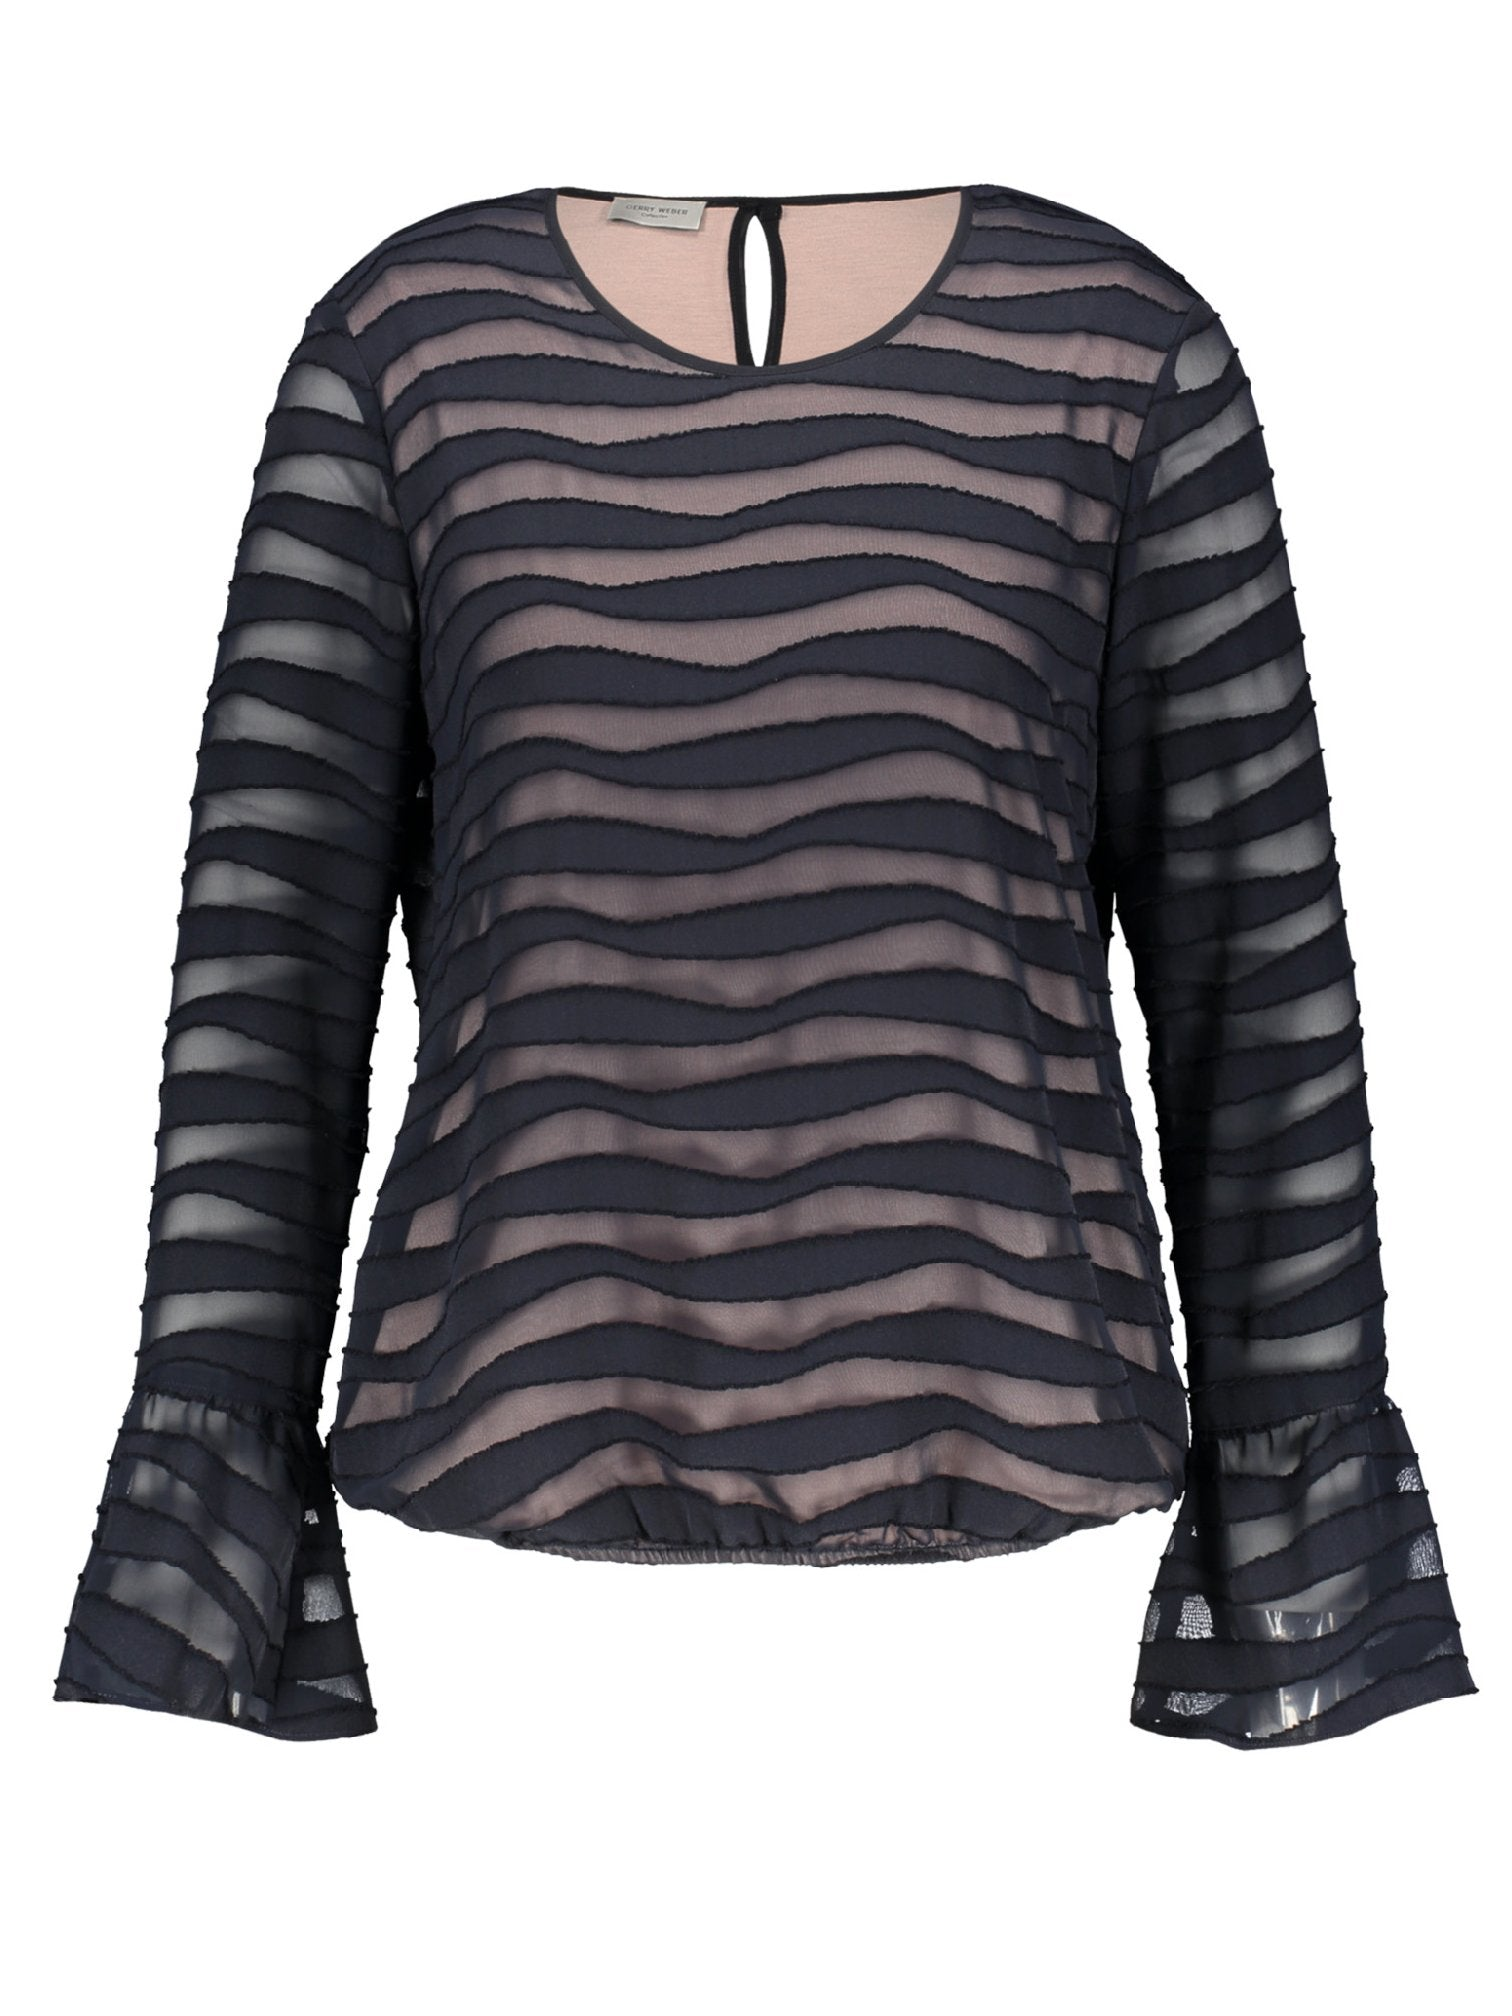 GERRY WEBER Navy Self Stripe Top with Pink Lining